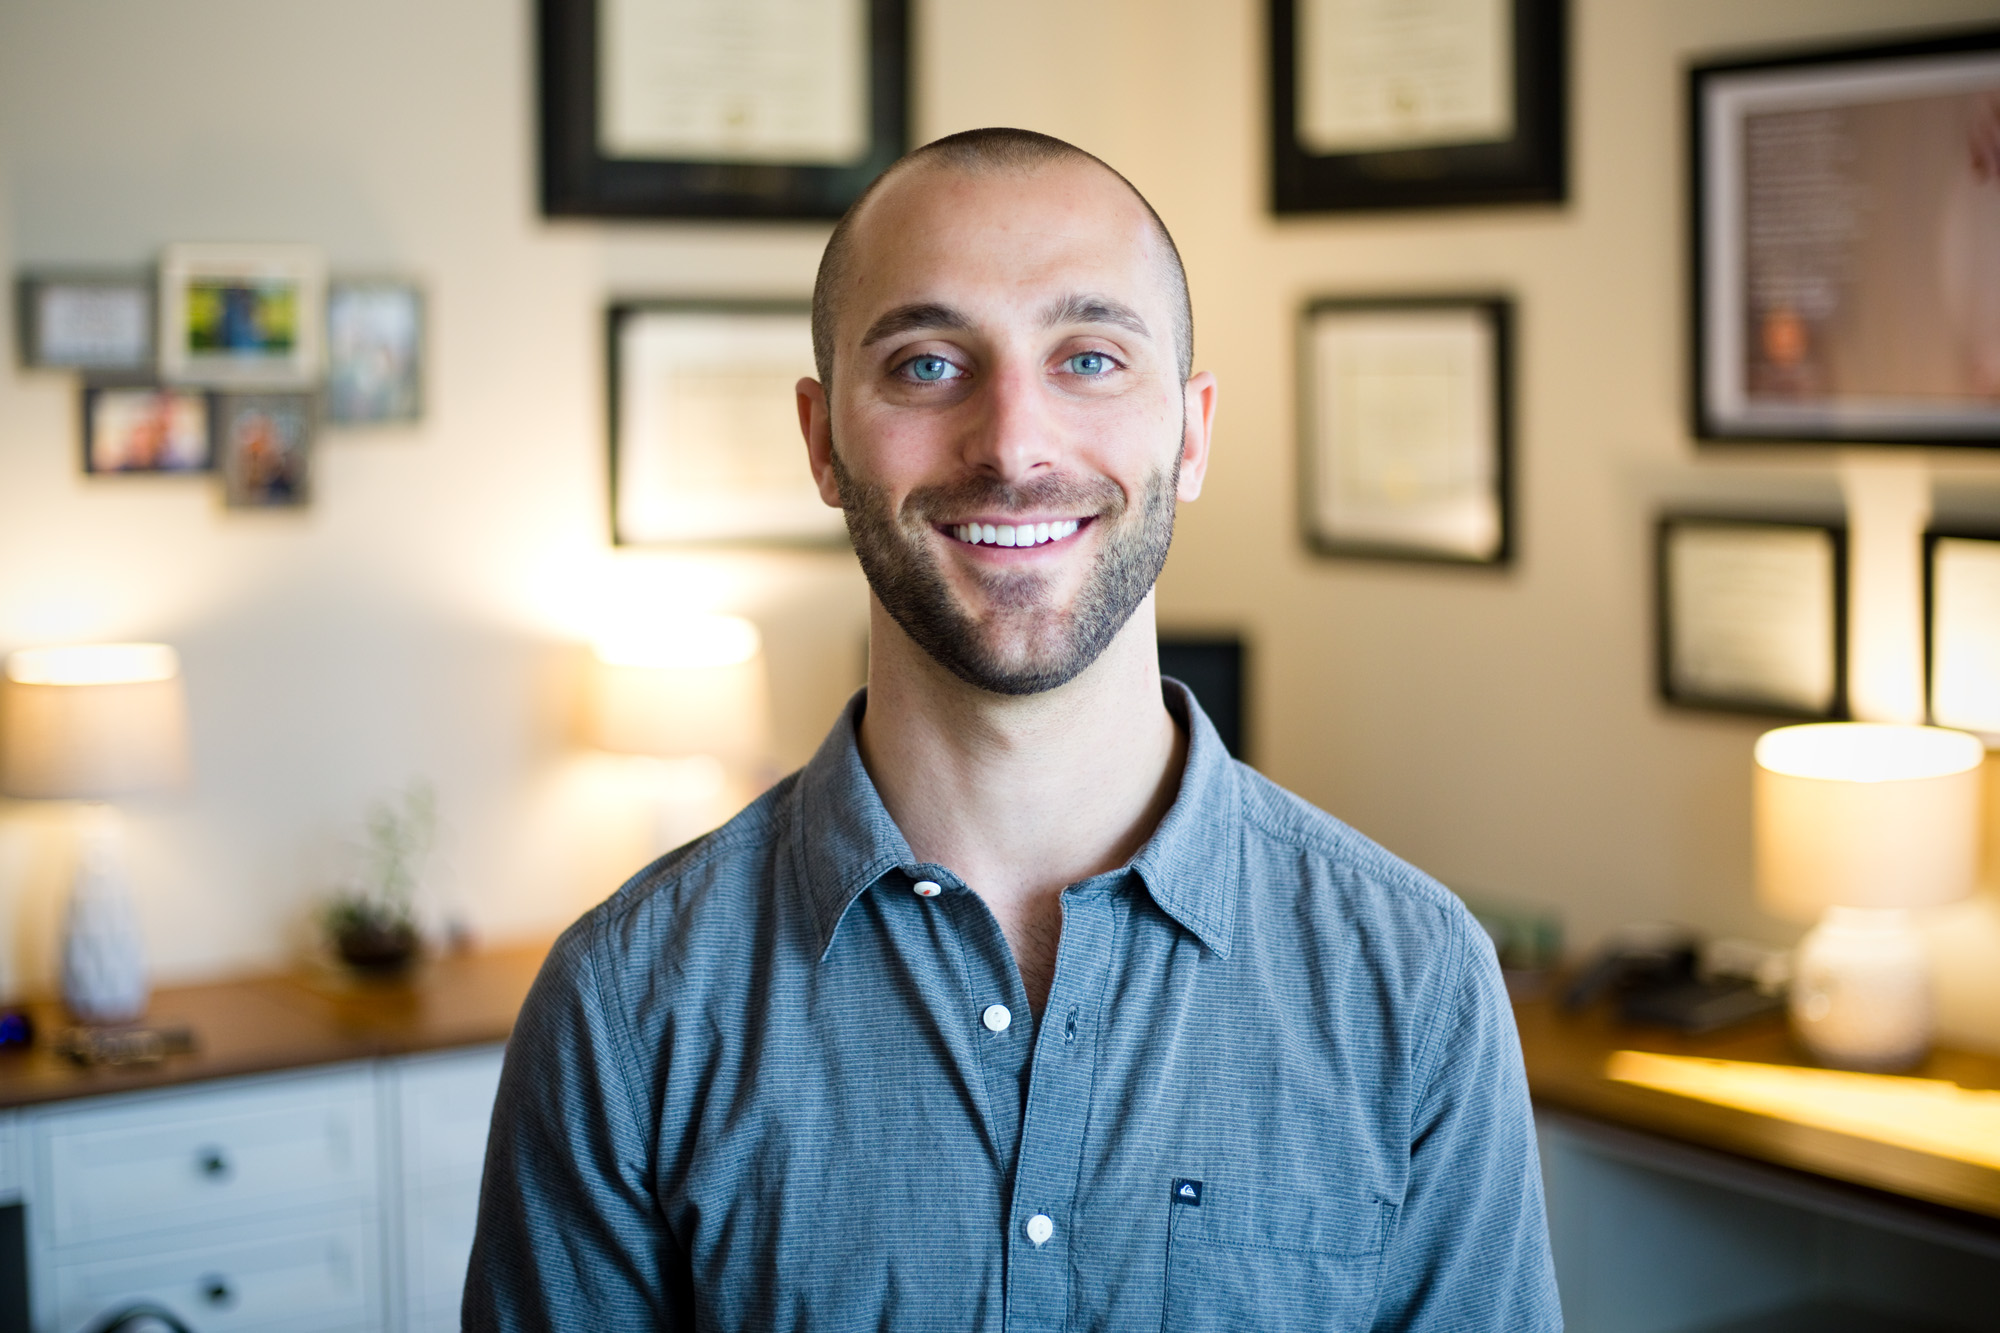 David Lutz, 27, at his office